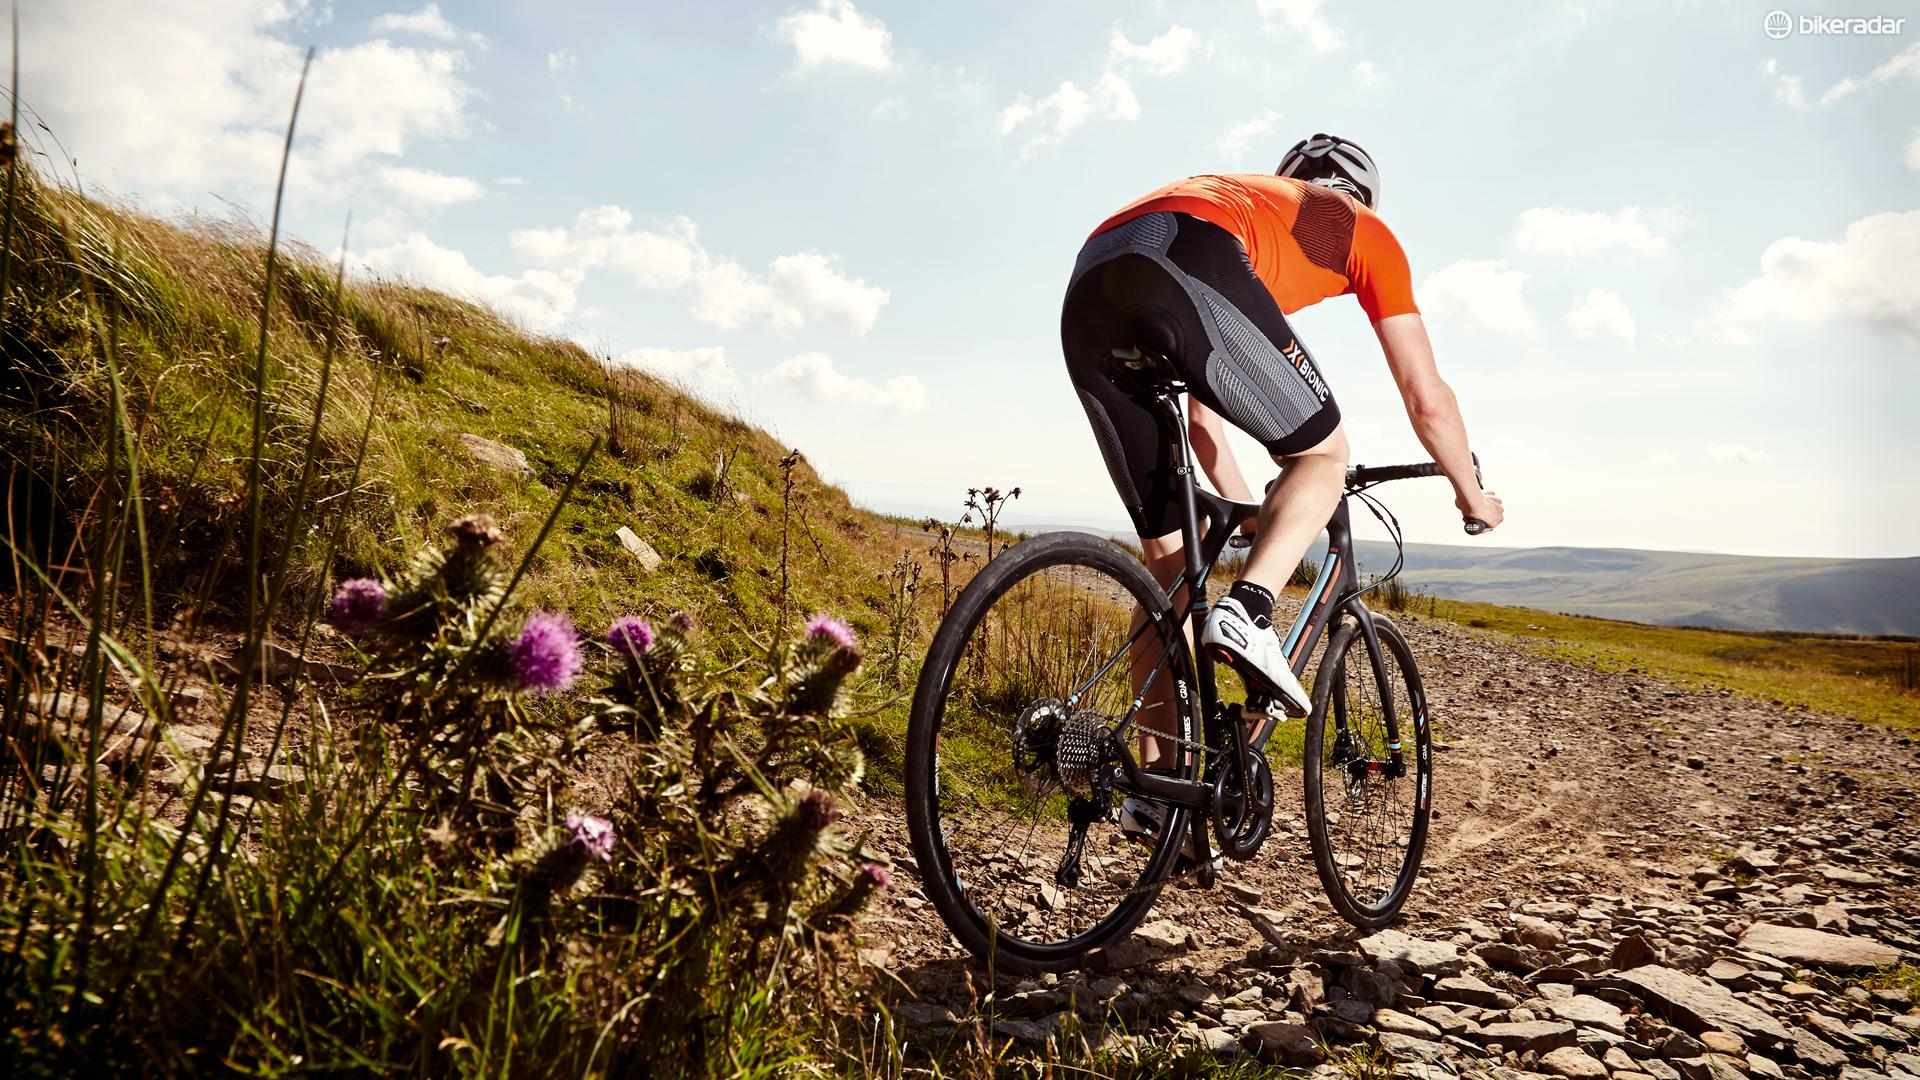 Here's a look at some of this year's best gravel bikes